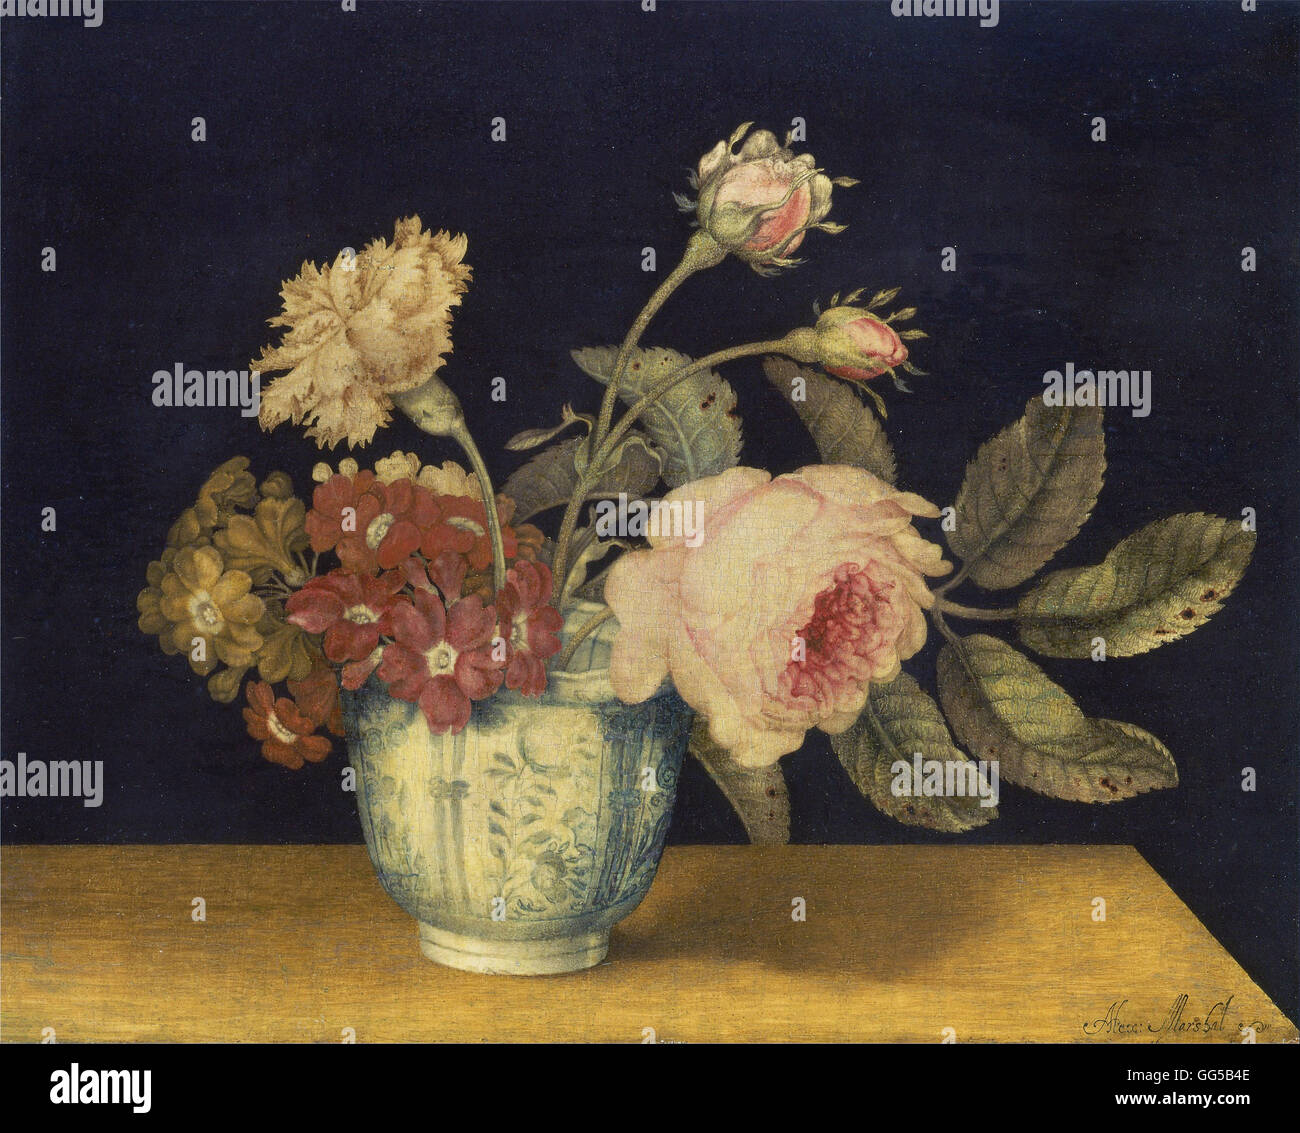 Alexander Marshal - Flowers in a Delft Jar - Stock Image